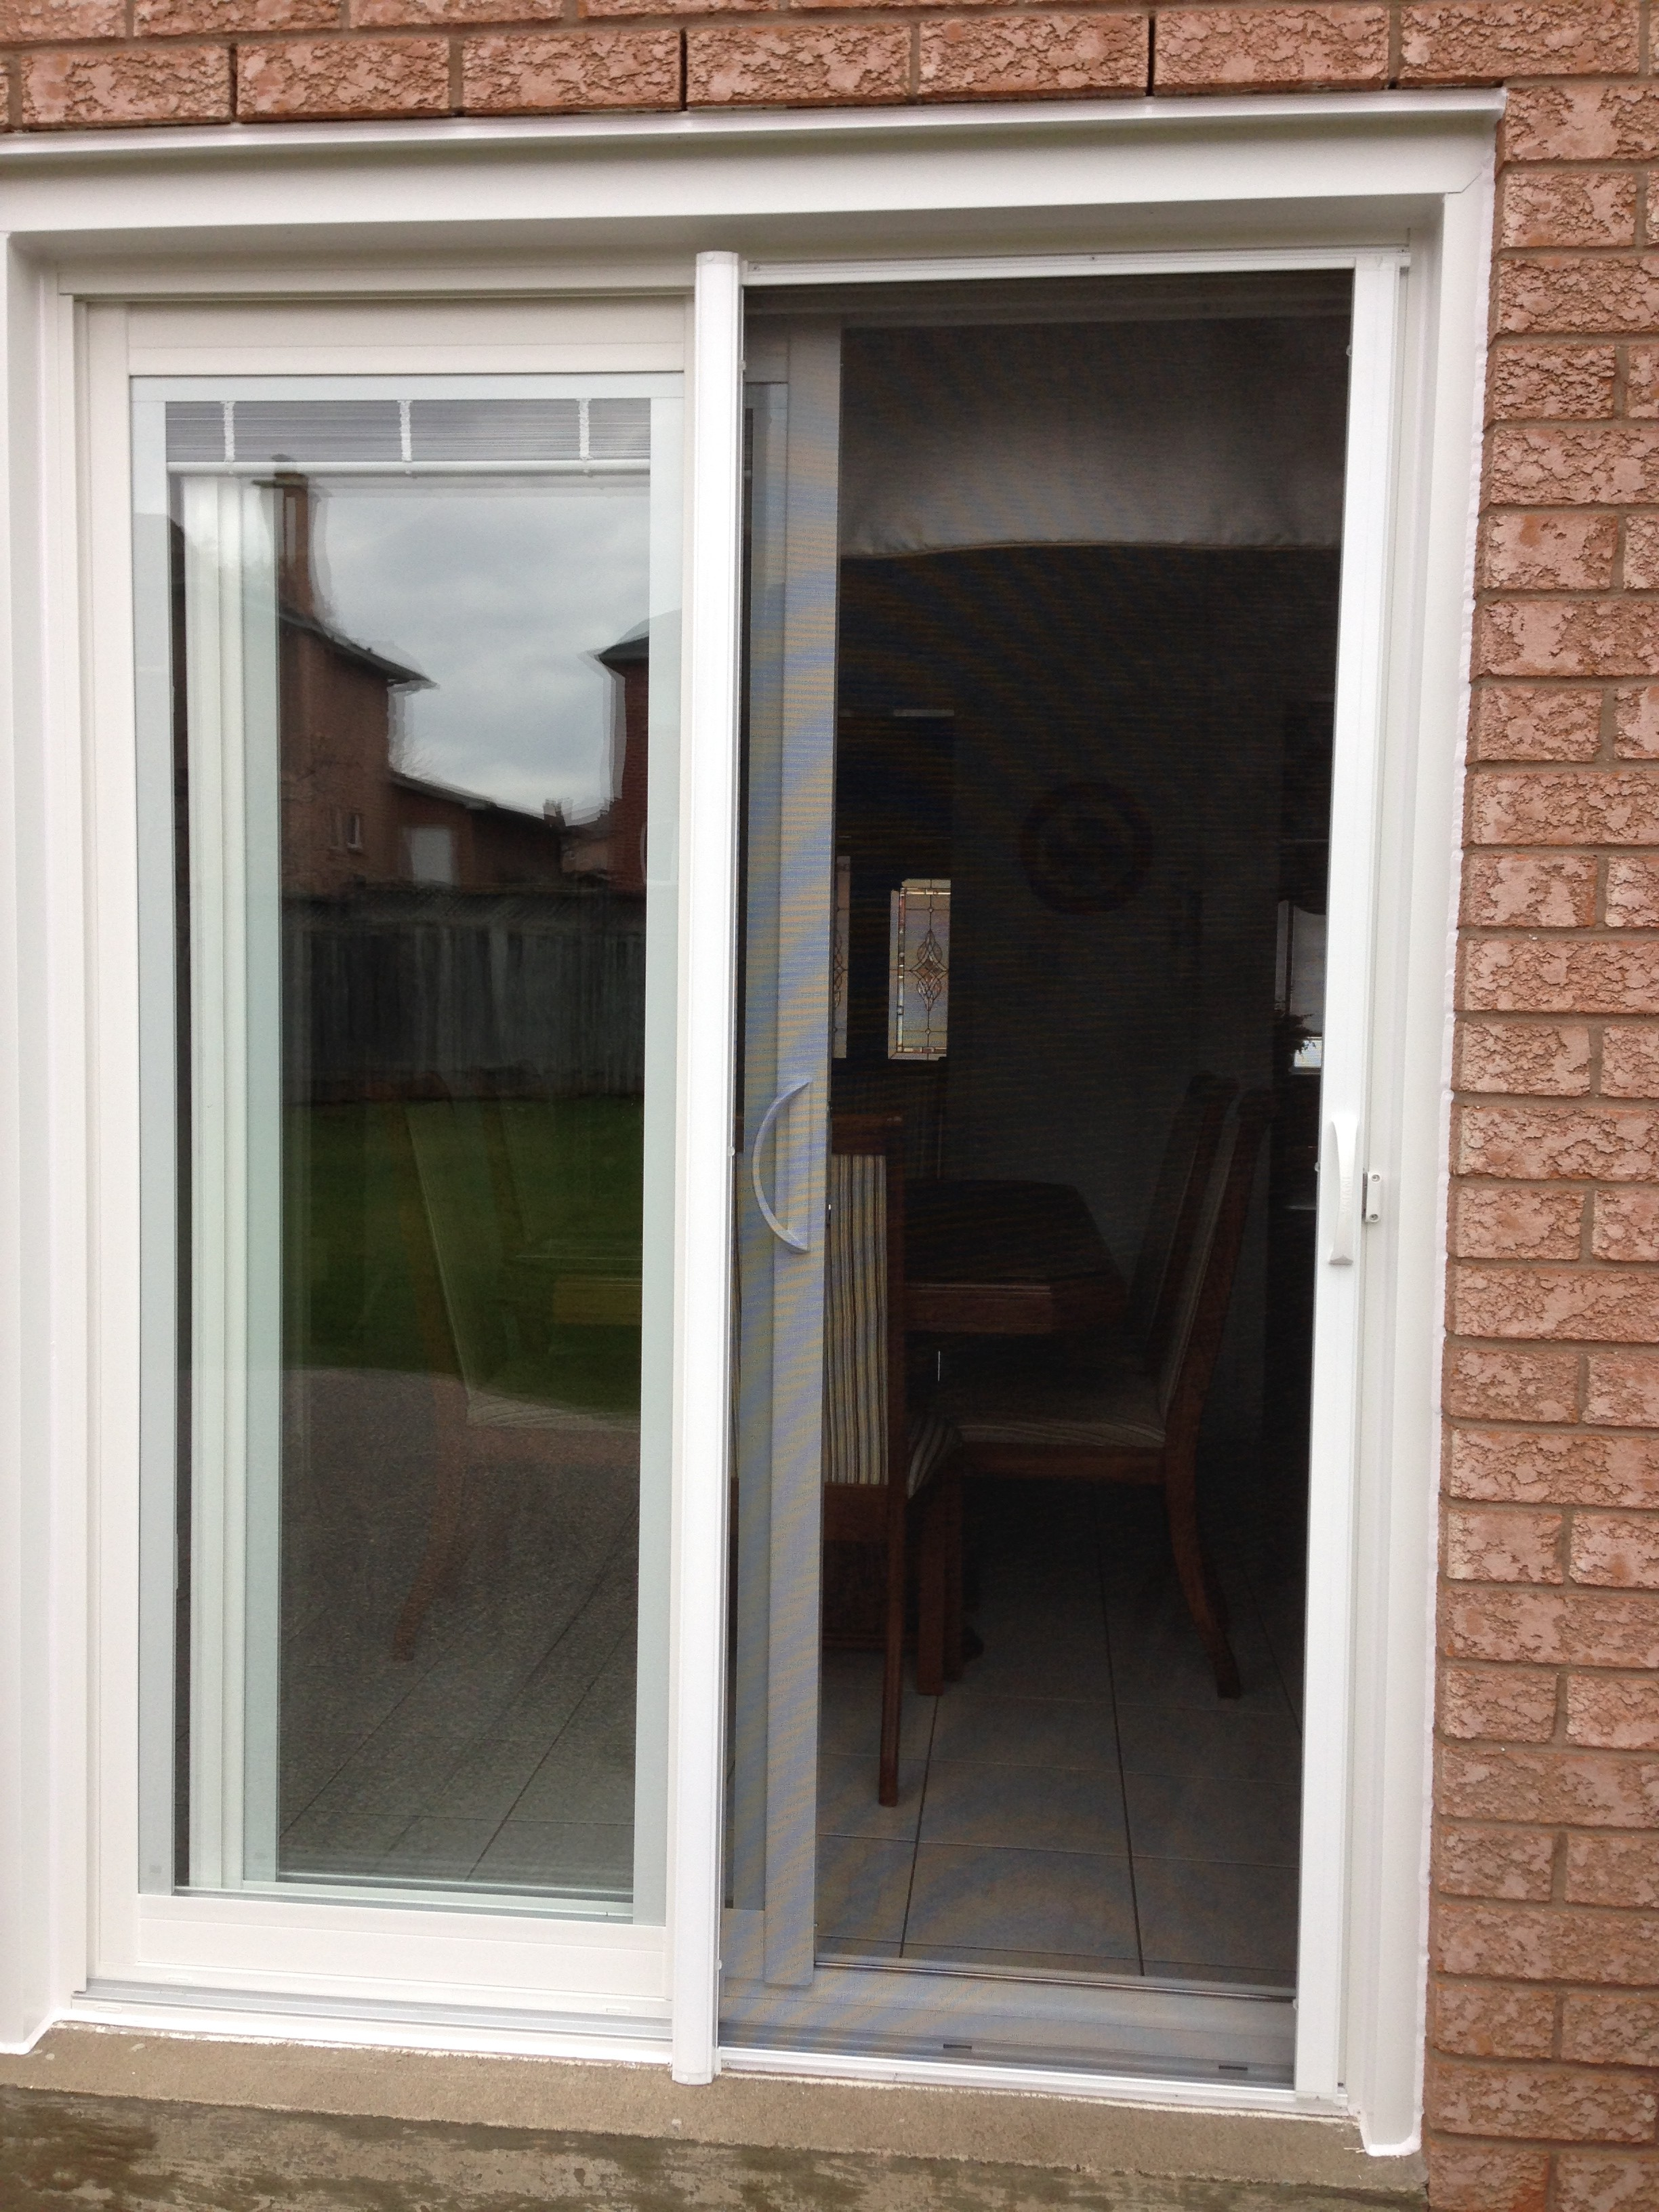 Retractable Screen Doors in white matched with brick wall